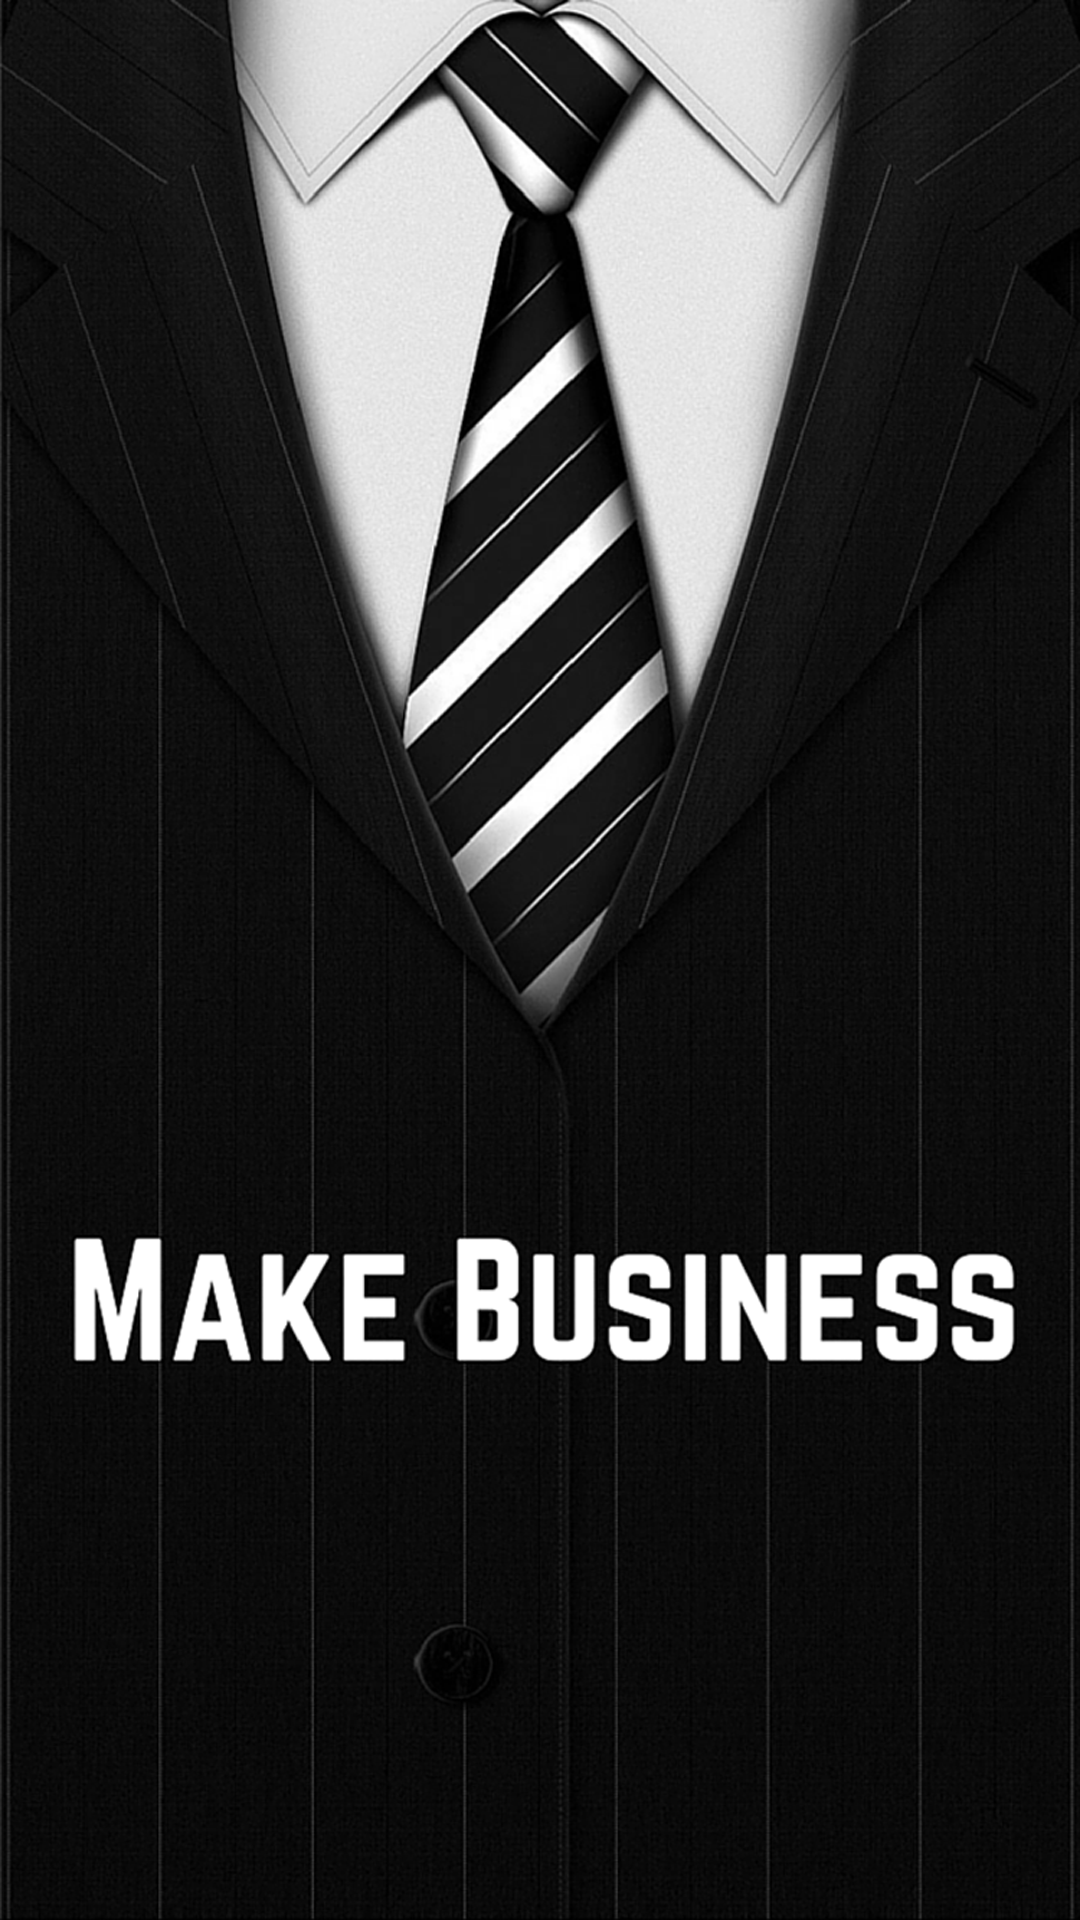 Art Creative Quote Business Tie Suit Shirt Black White HD IPhone 6 Plus Wallpaper